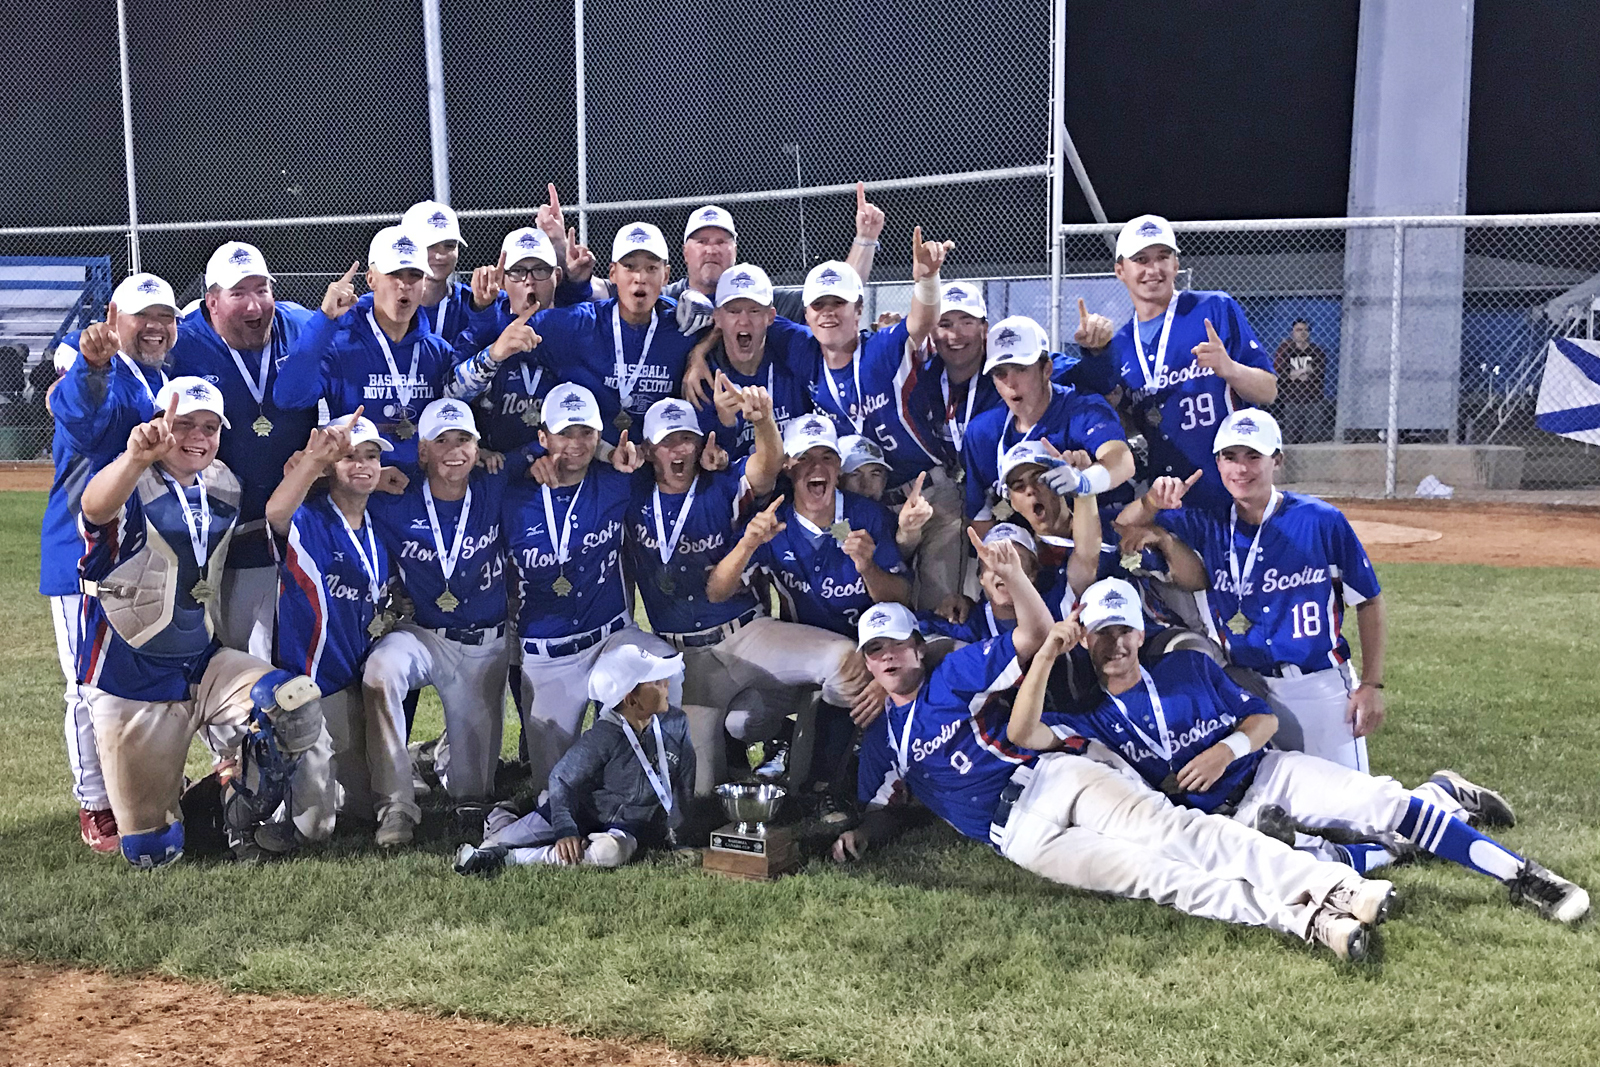 BIGS Seeds Baseball Canada Cup: Nova Scotia Defeats Ontario and Wins Gold